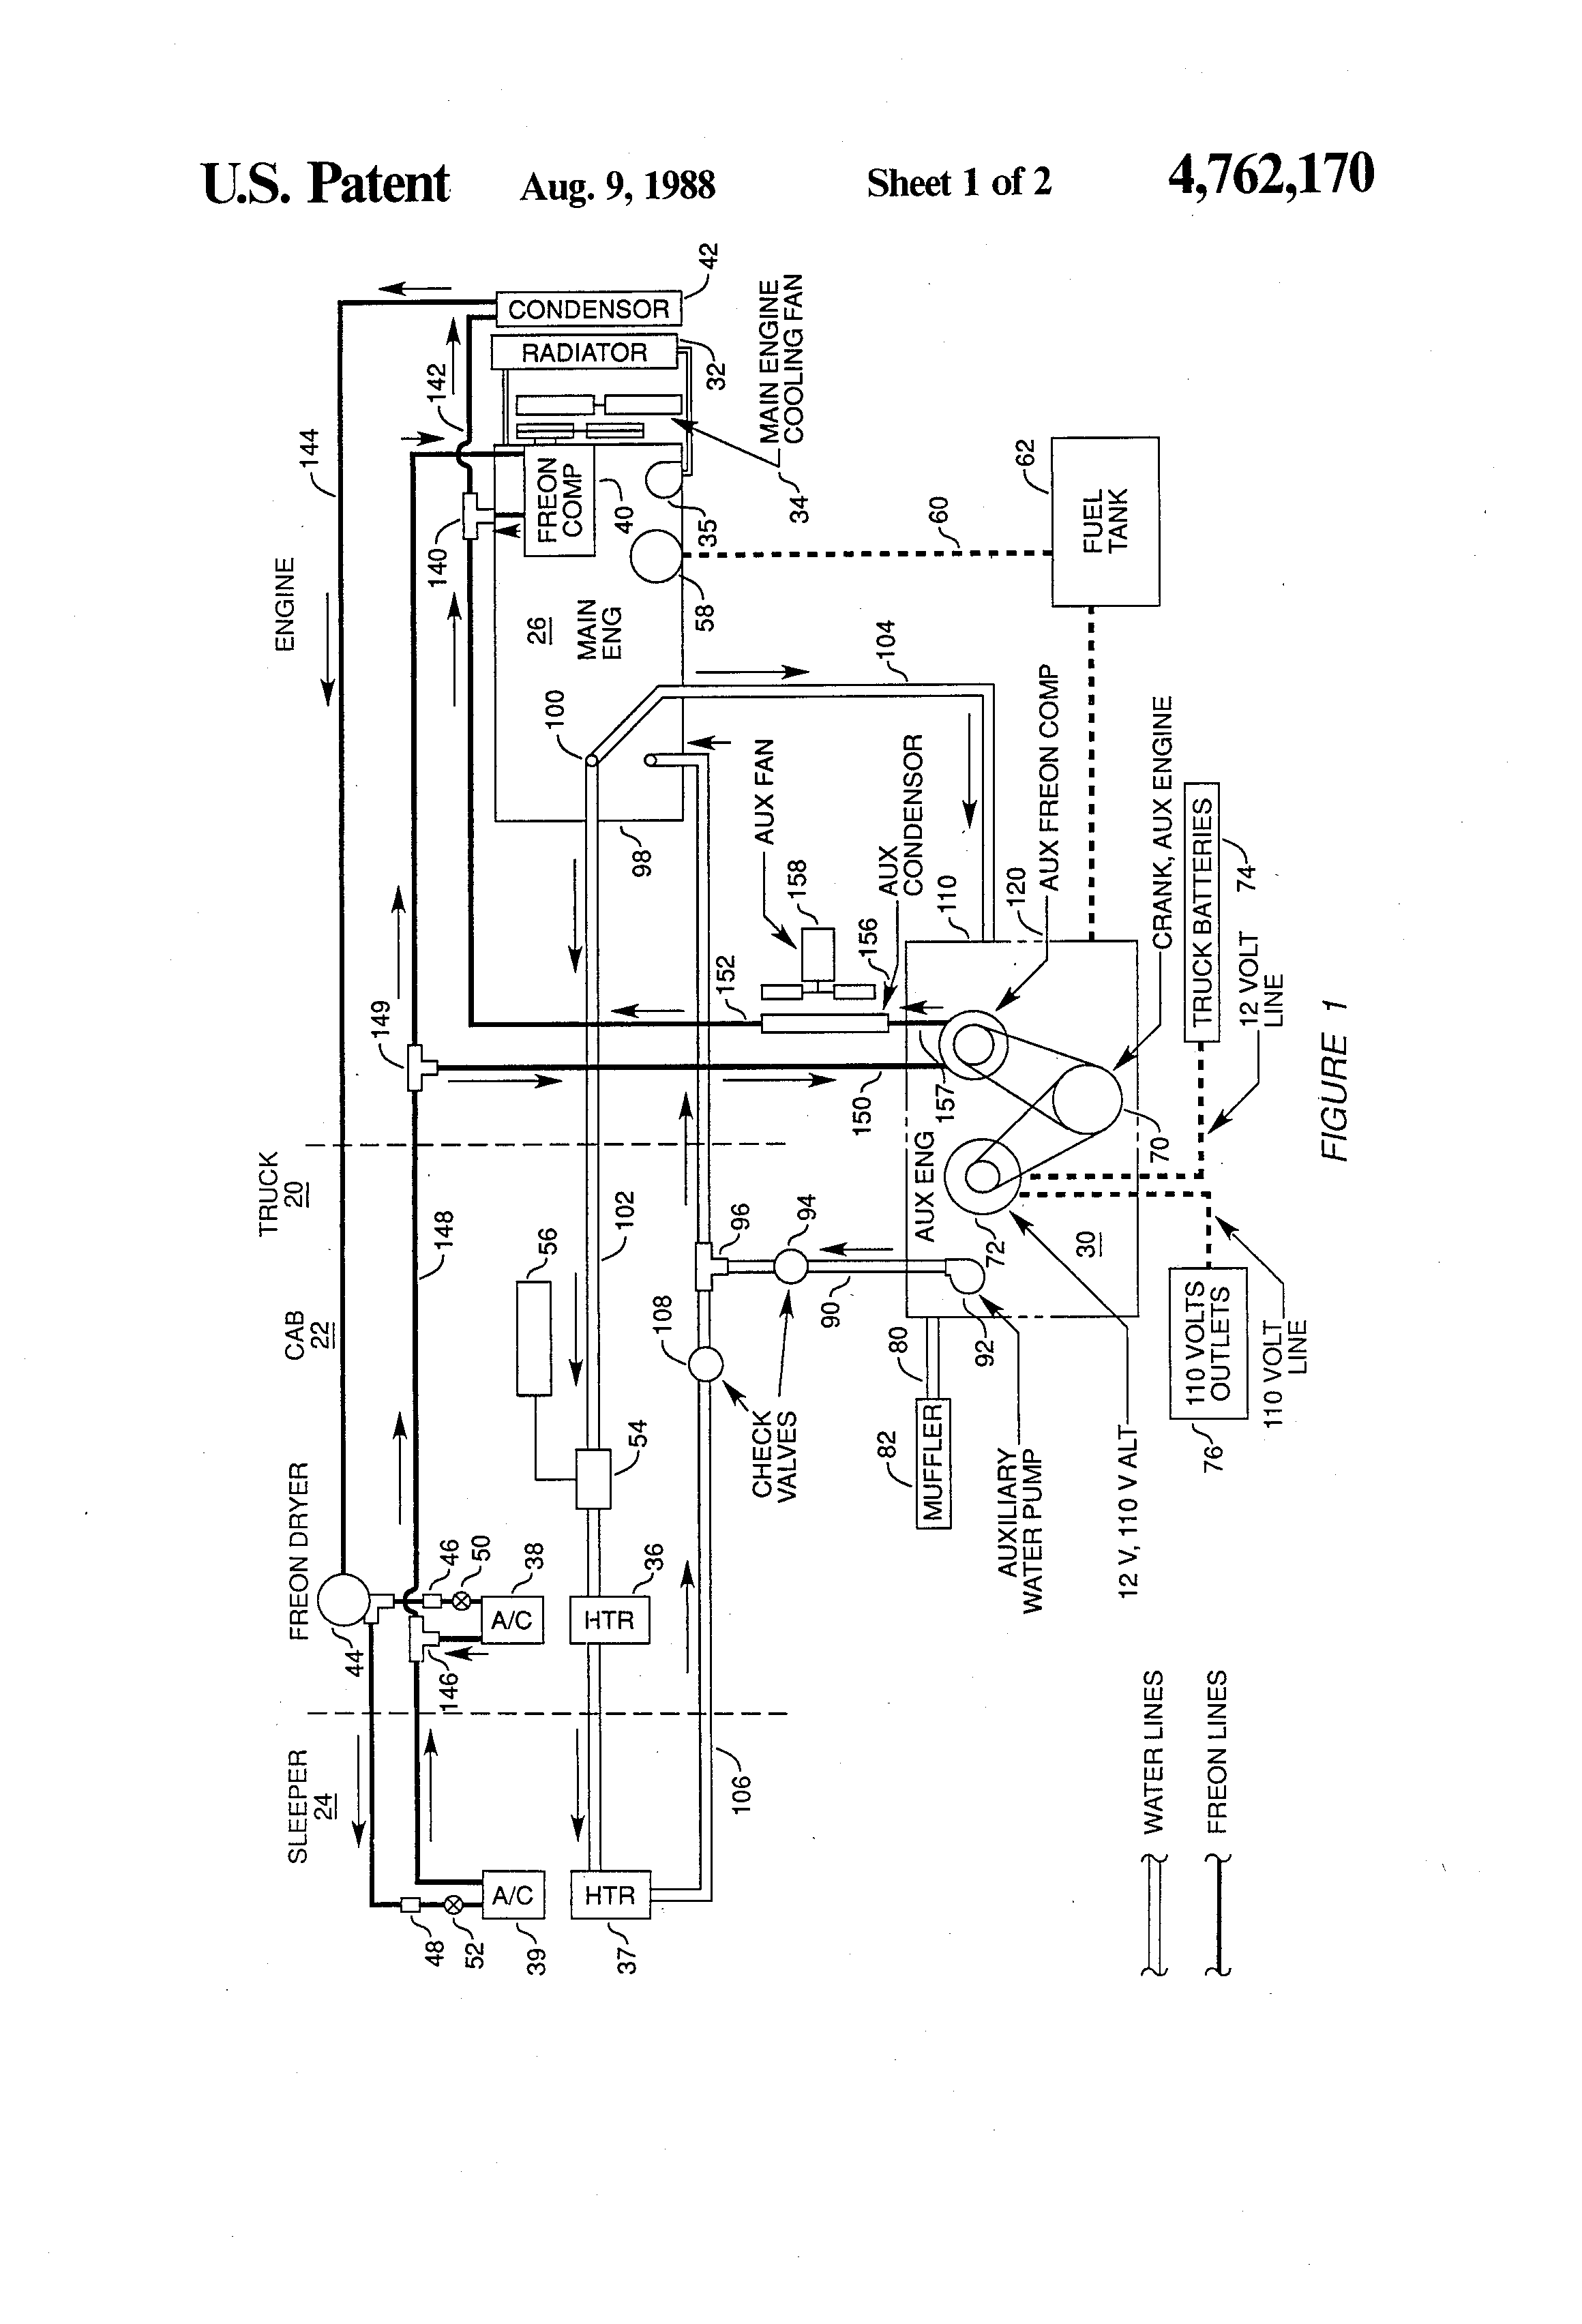 thermo king tripac wiring diagram wiring diagrams thermo king tripac wiring schematic diagrams and schematics